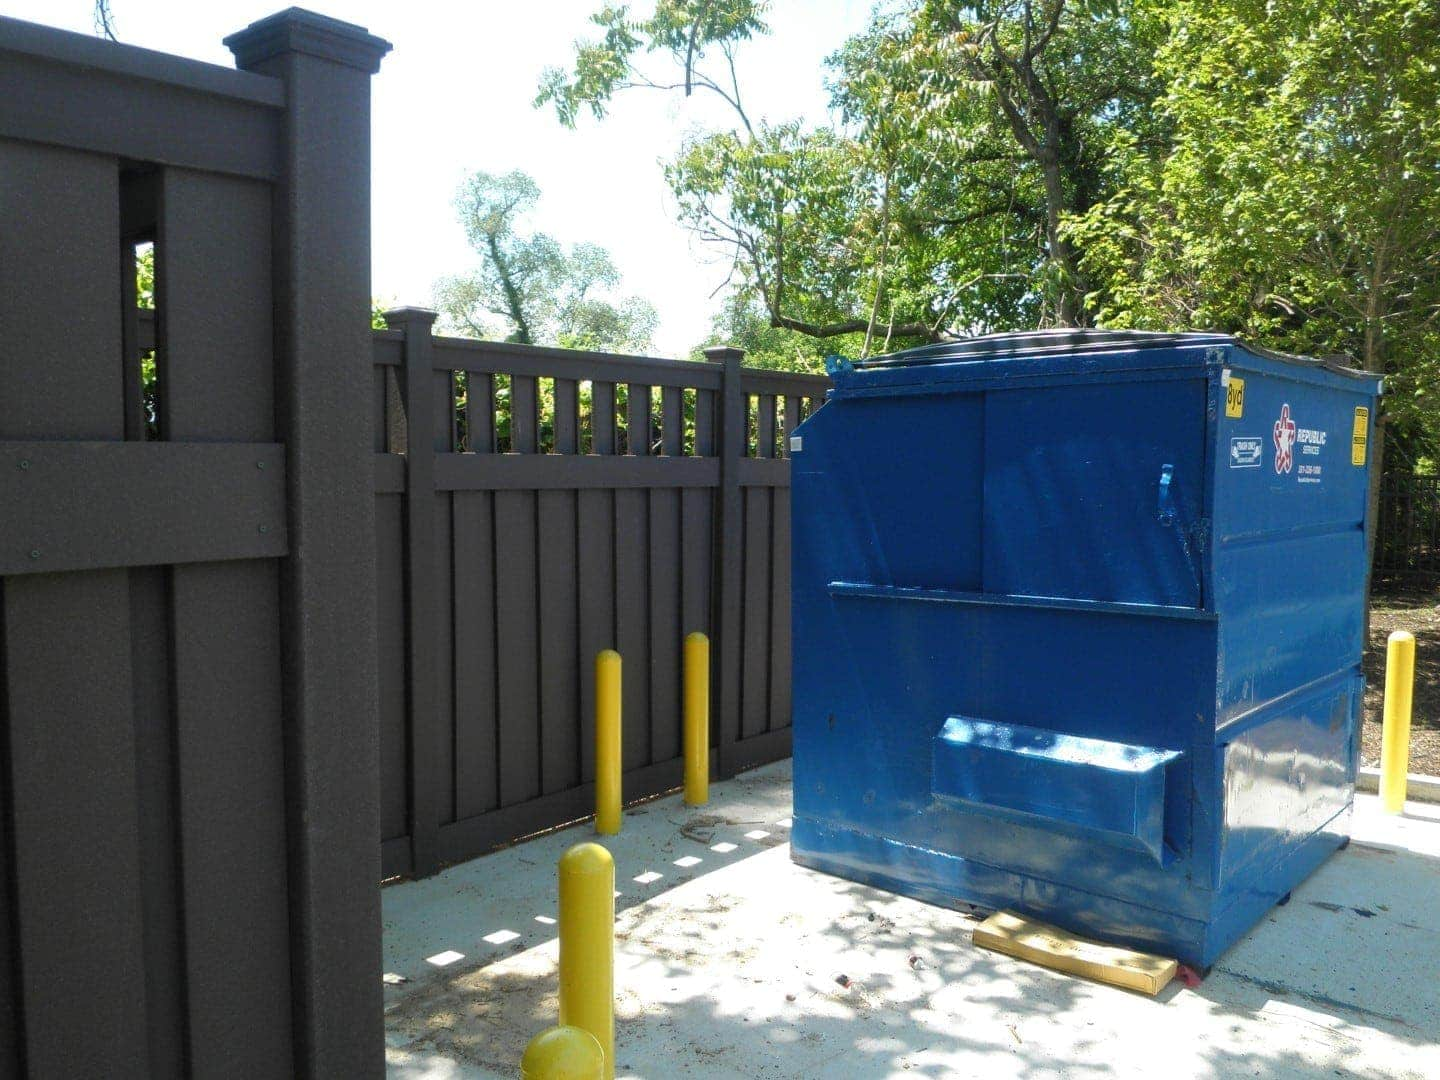 A dumpster enclosure in Washington DC made from the Trex Seclusions composite fencing system